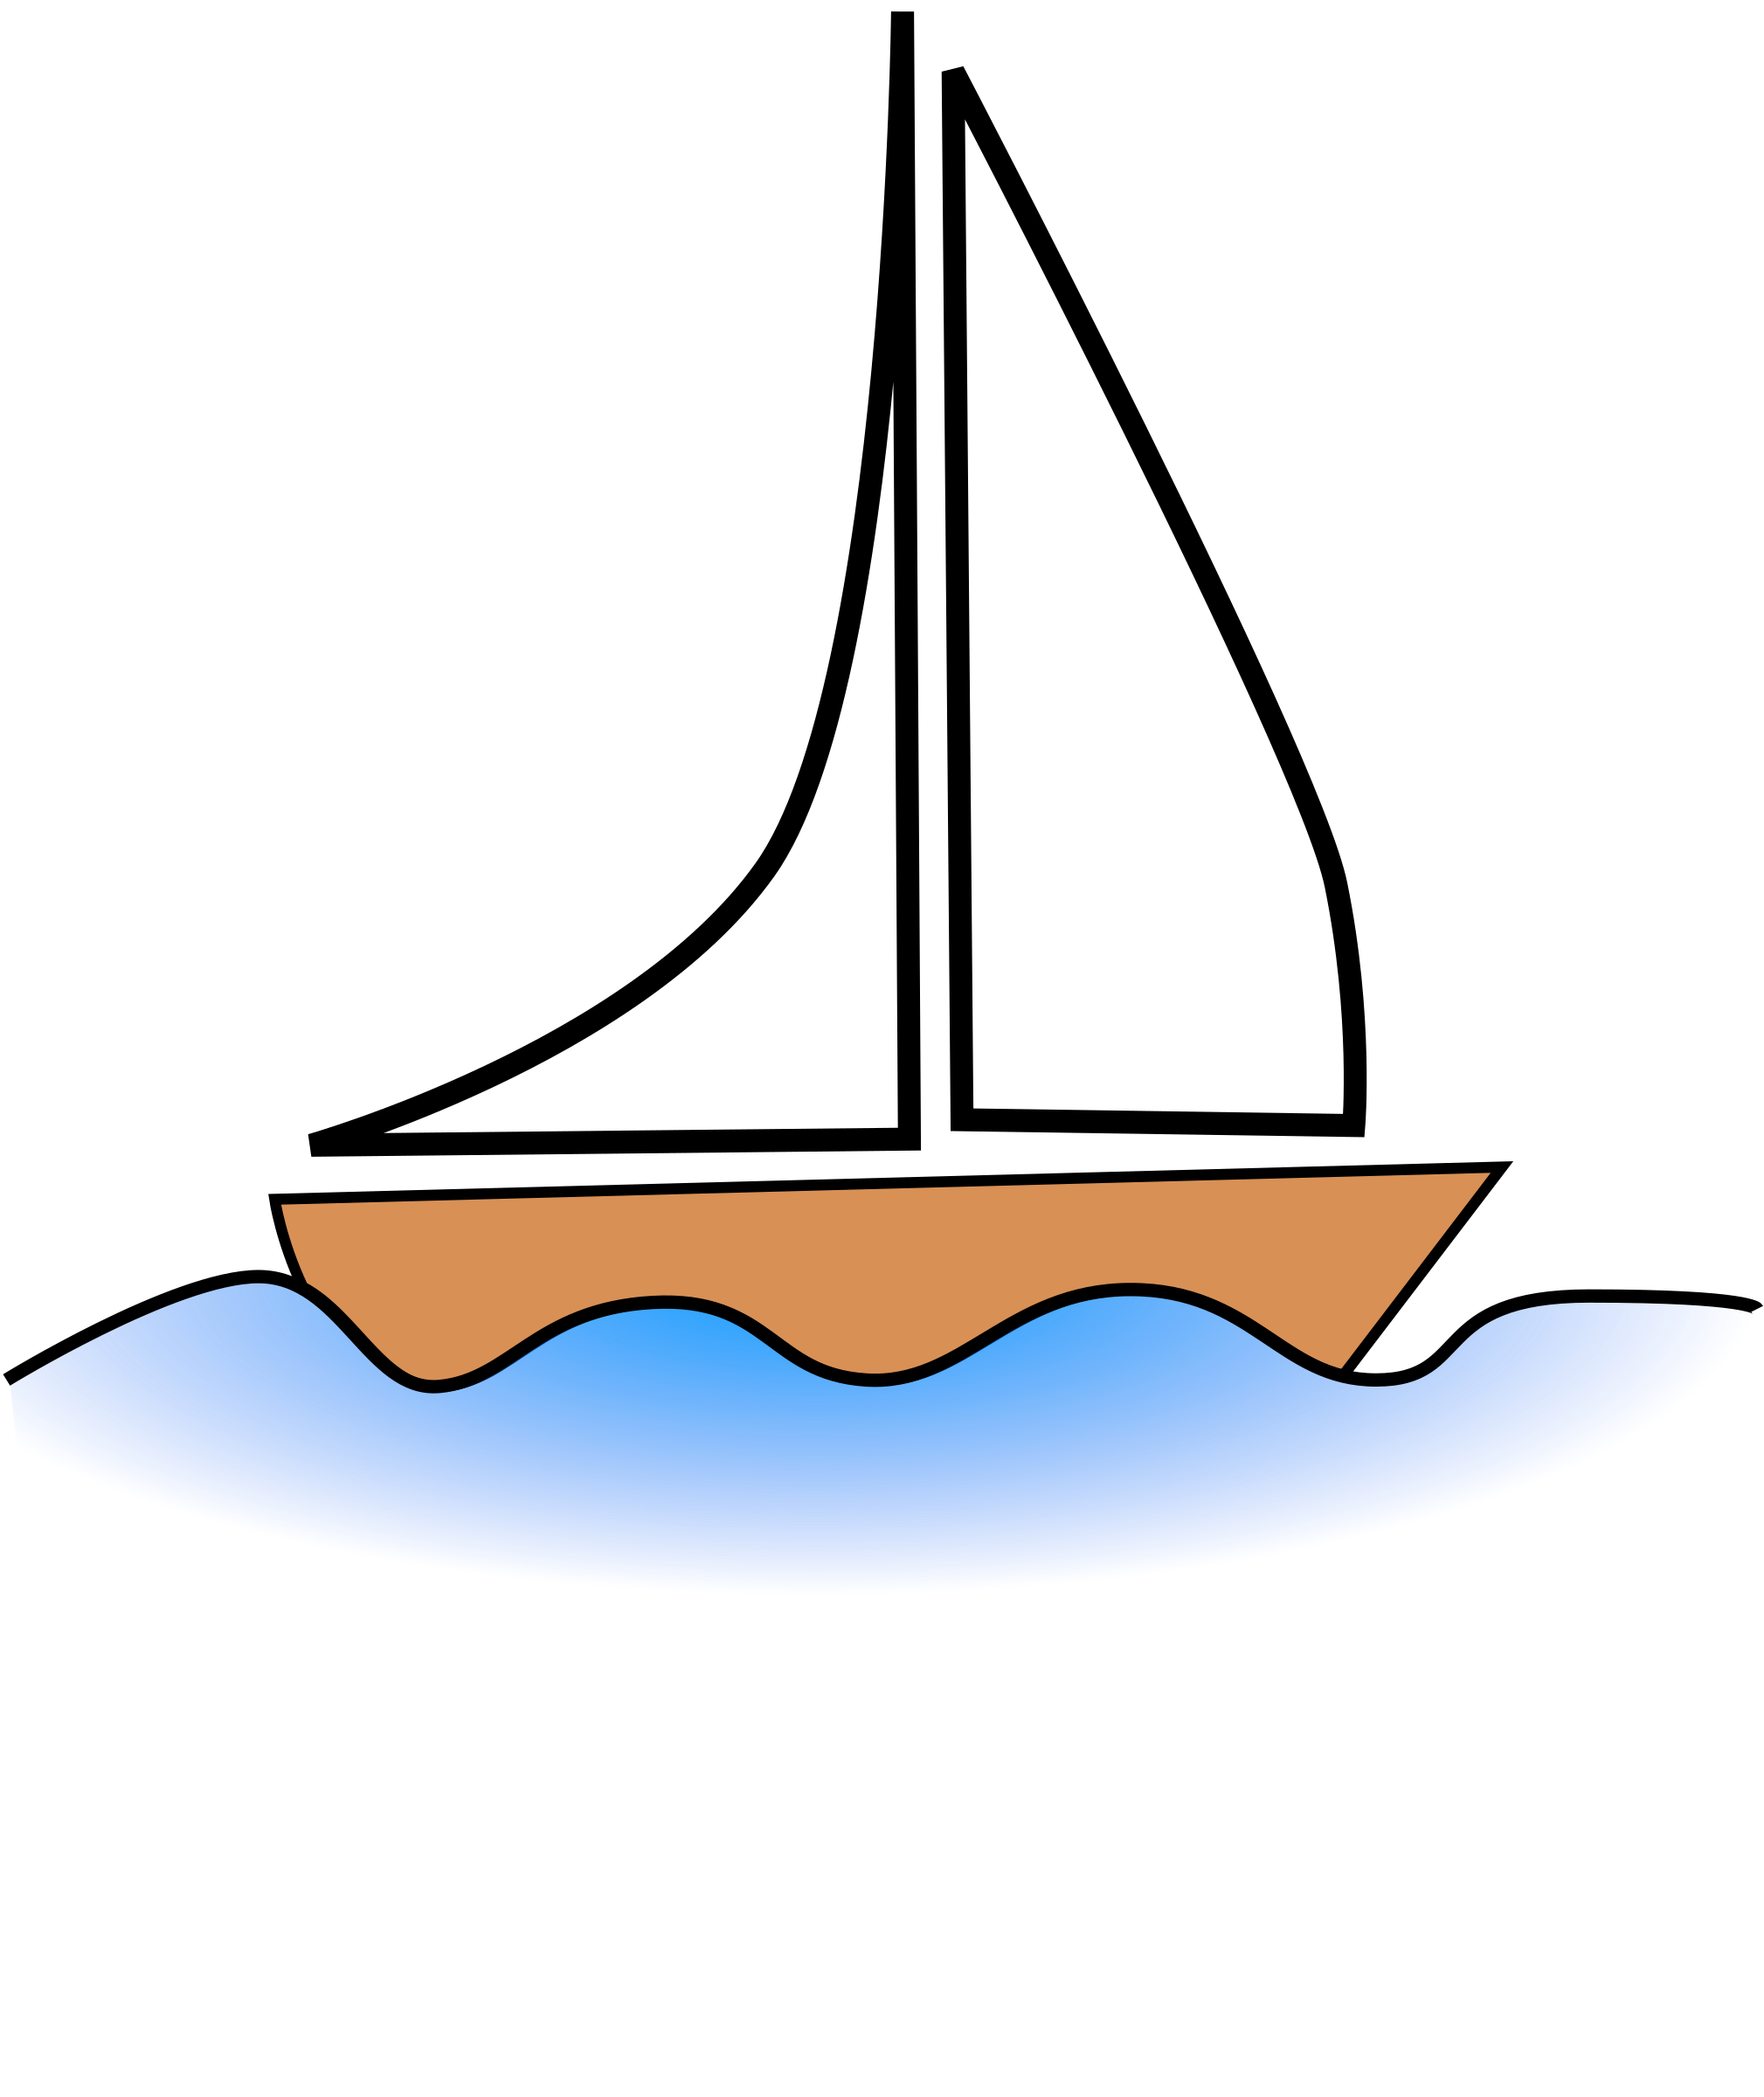 Yacht png free clipart. Svg download green